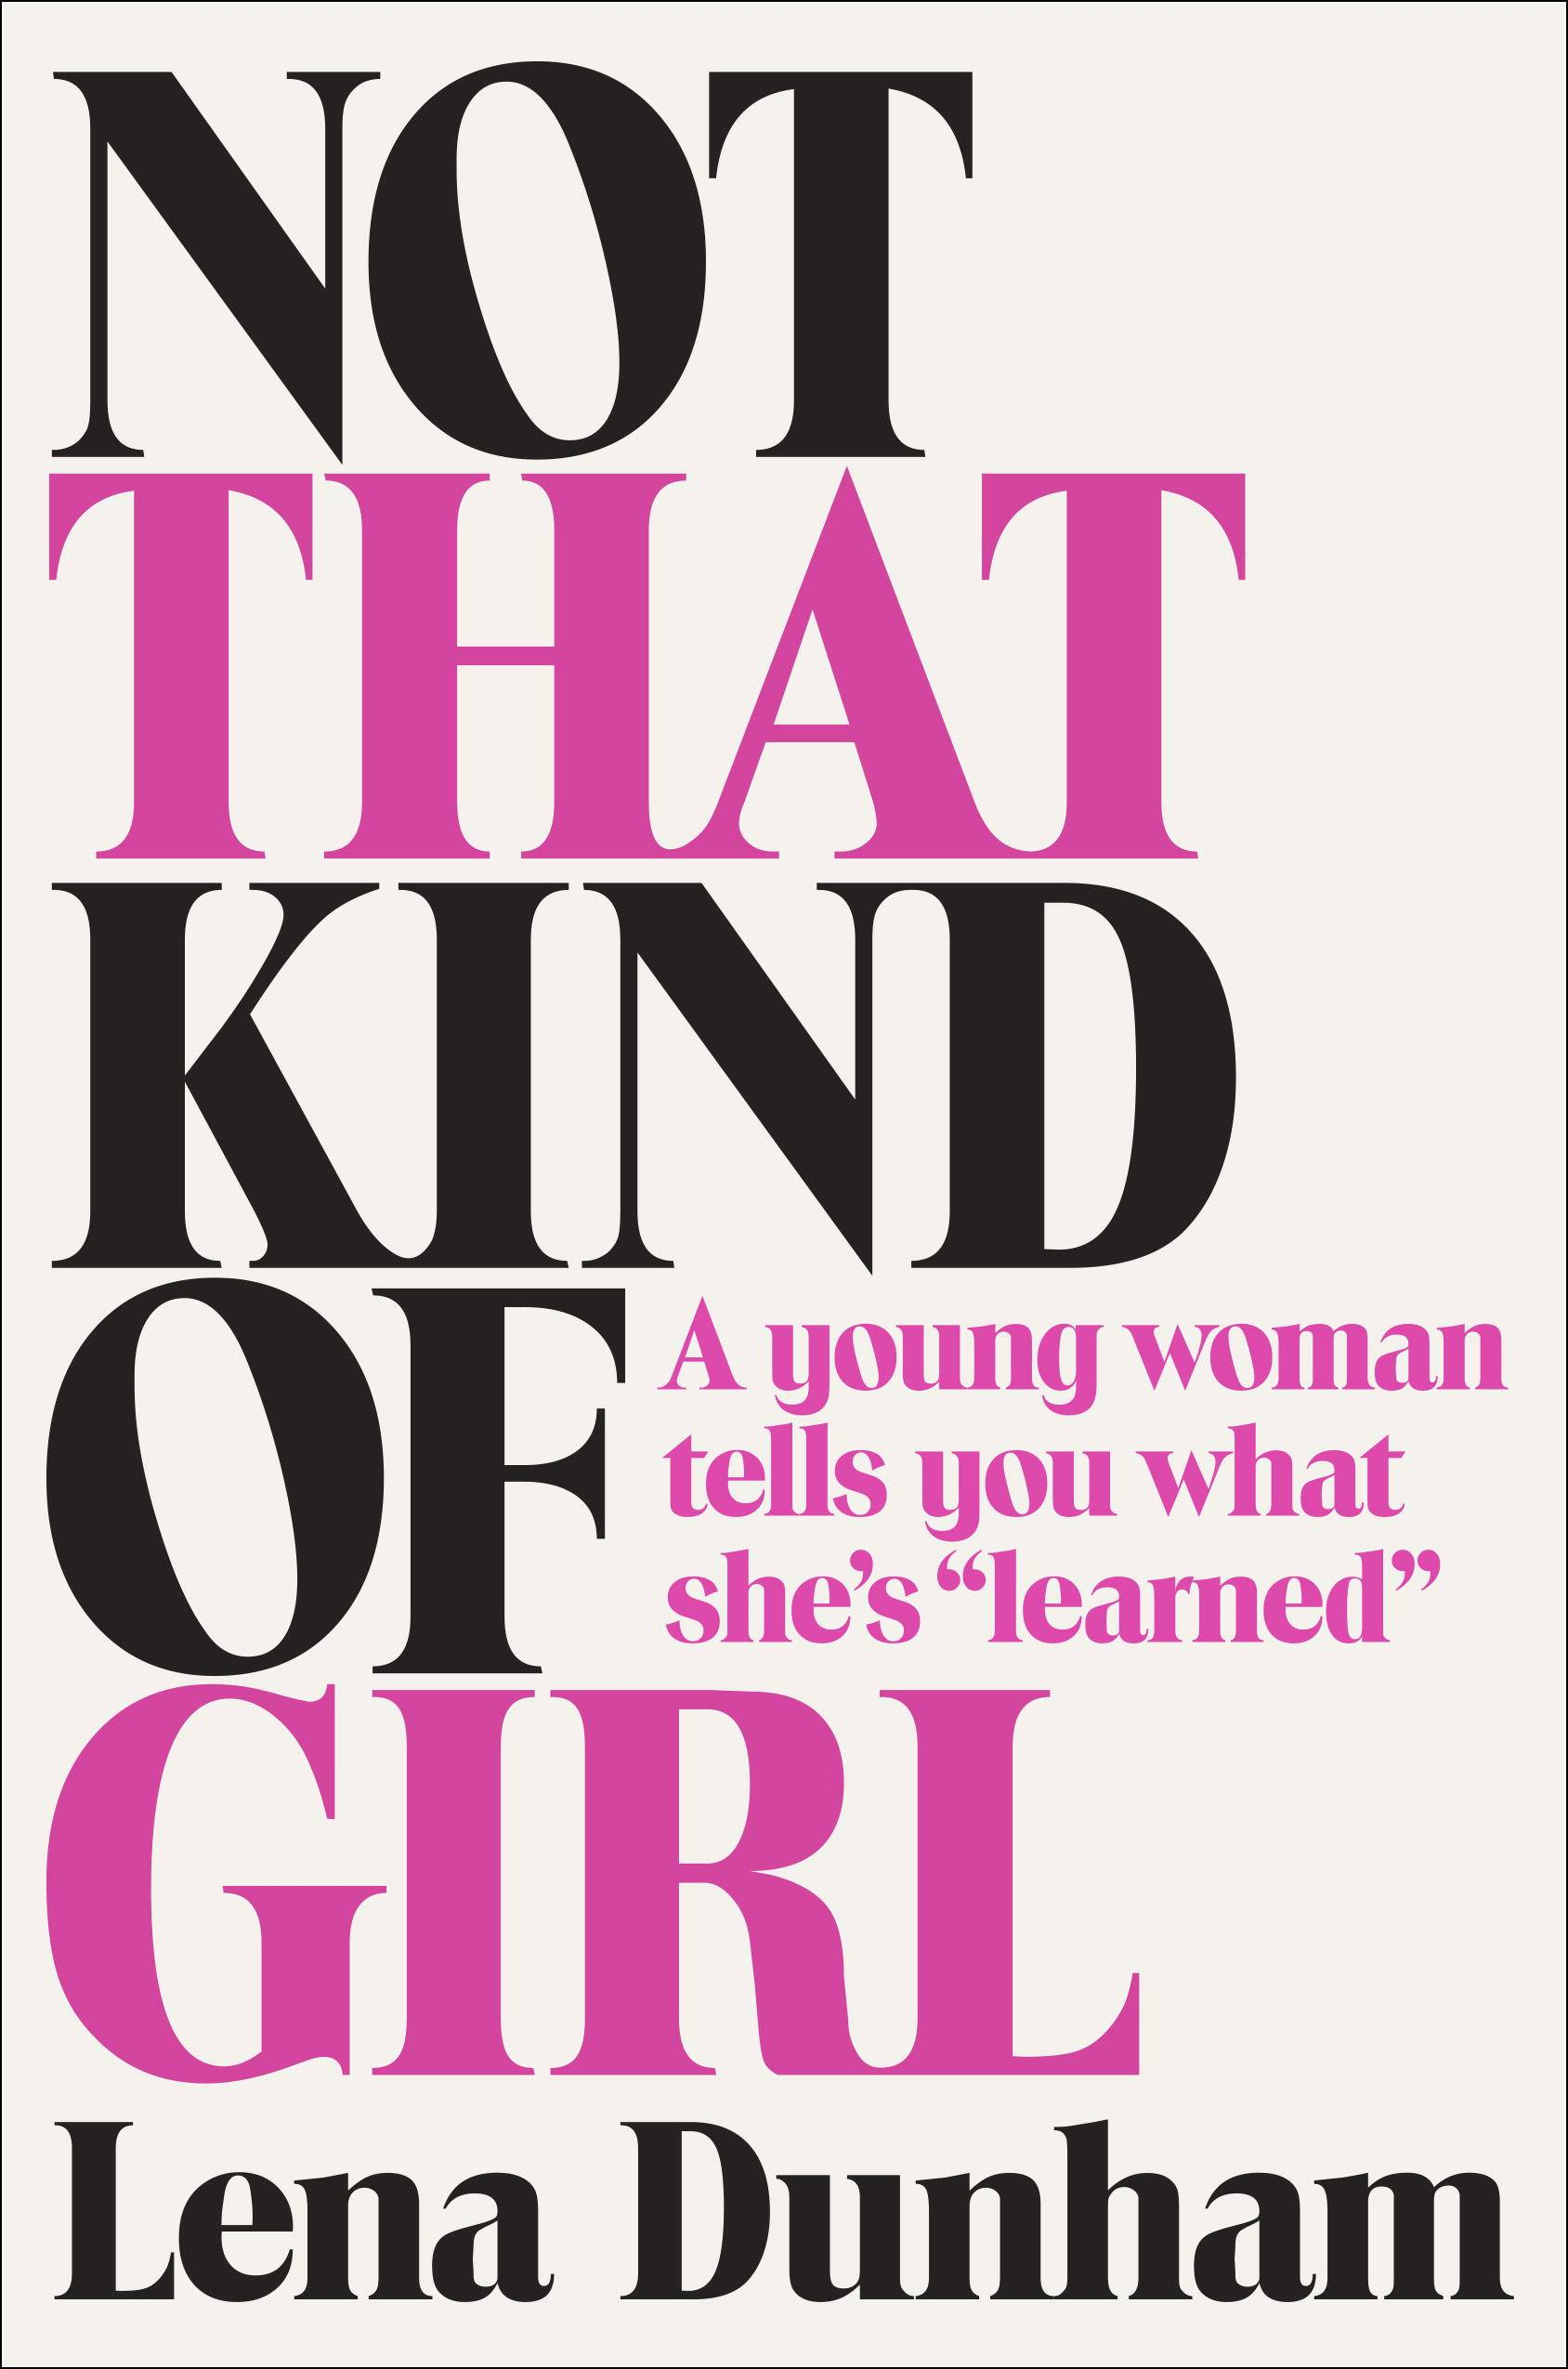 """Not That Kind of Girl: A Young Woman Tells You What She's 'Learned,'"" by Lena Dunham will be released on Sept. 30."